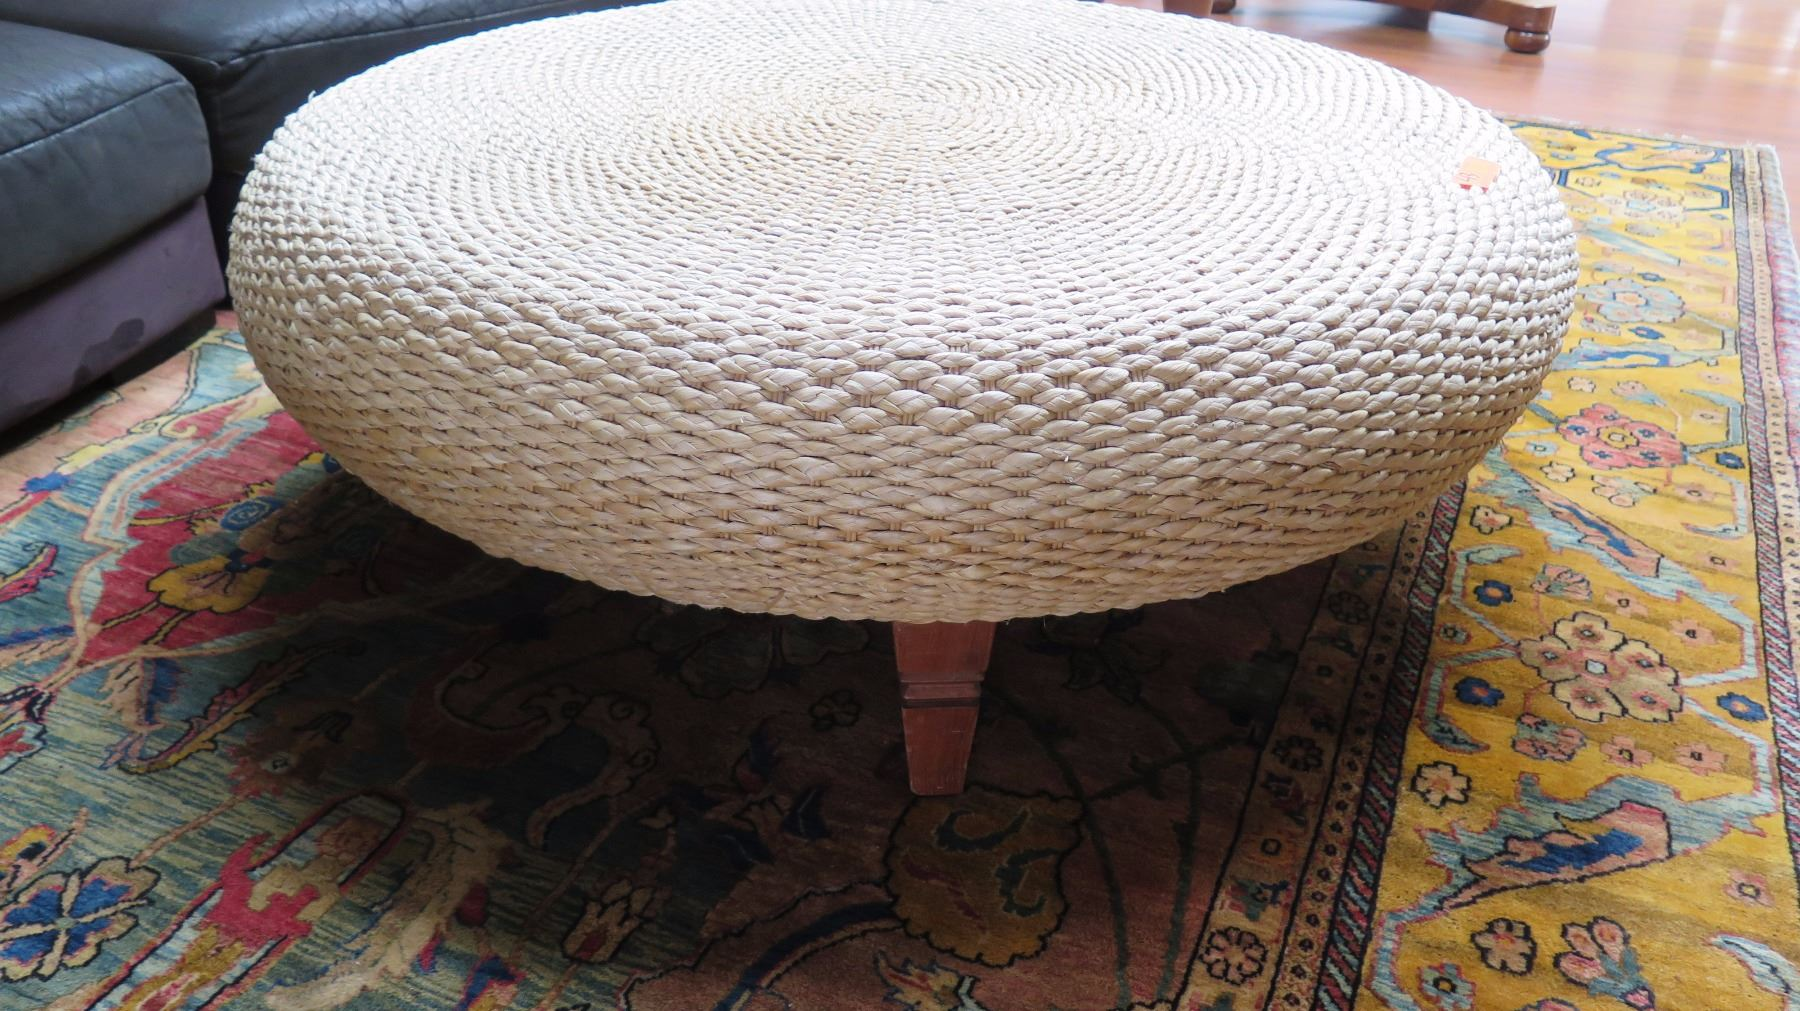 ... Image 3 : Coffee Table   Woven Water Hyacinth, U201cAsia Tidesu201d, Roche ...